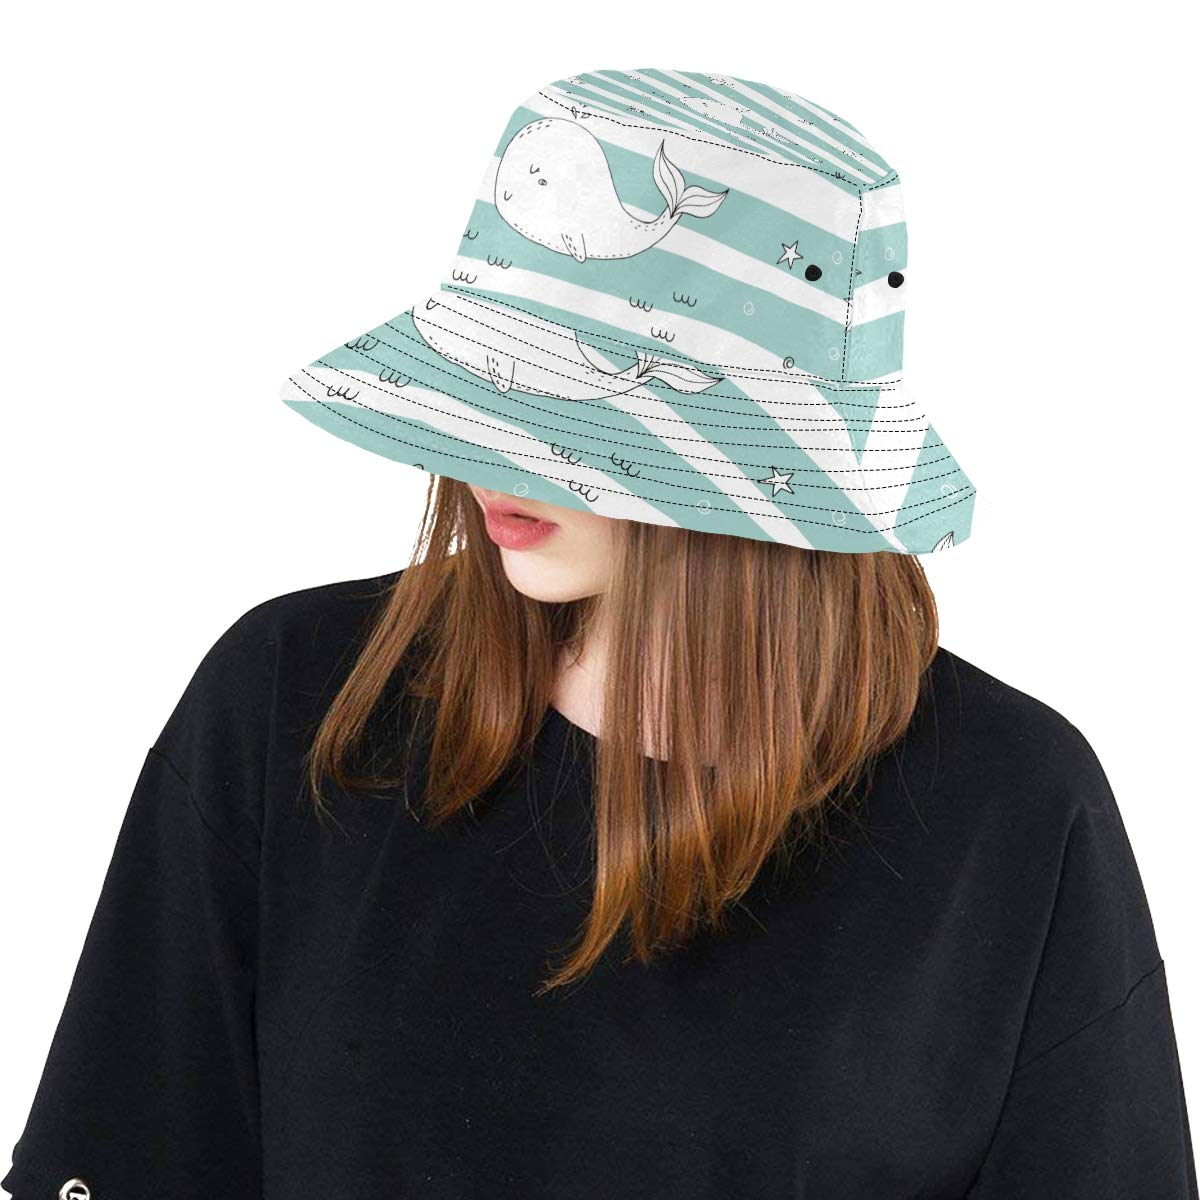 Cute Ocean Sky Blue Vivid Cartoon Whale New Summer Unisex Cotton Fashion Fishing Sun Bucket Hats for Kid Teens Women and Men with Customize Top Packable Fisherman Cap for Outdoor Travel